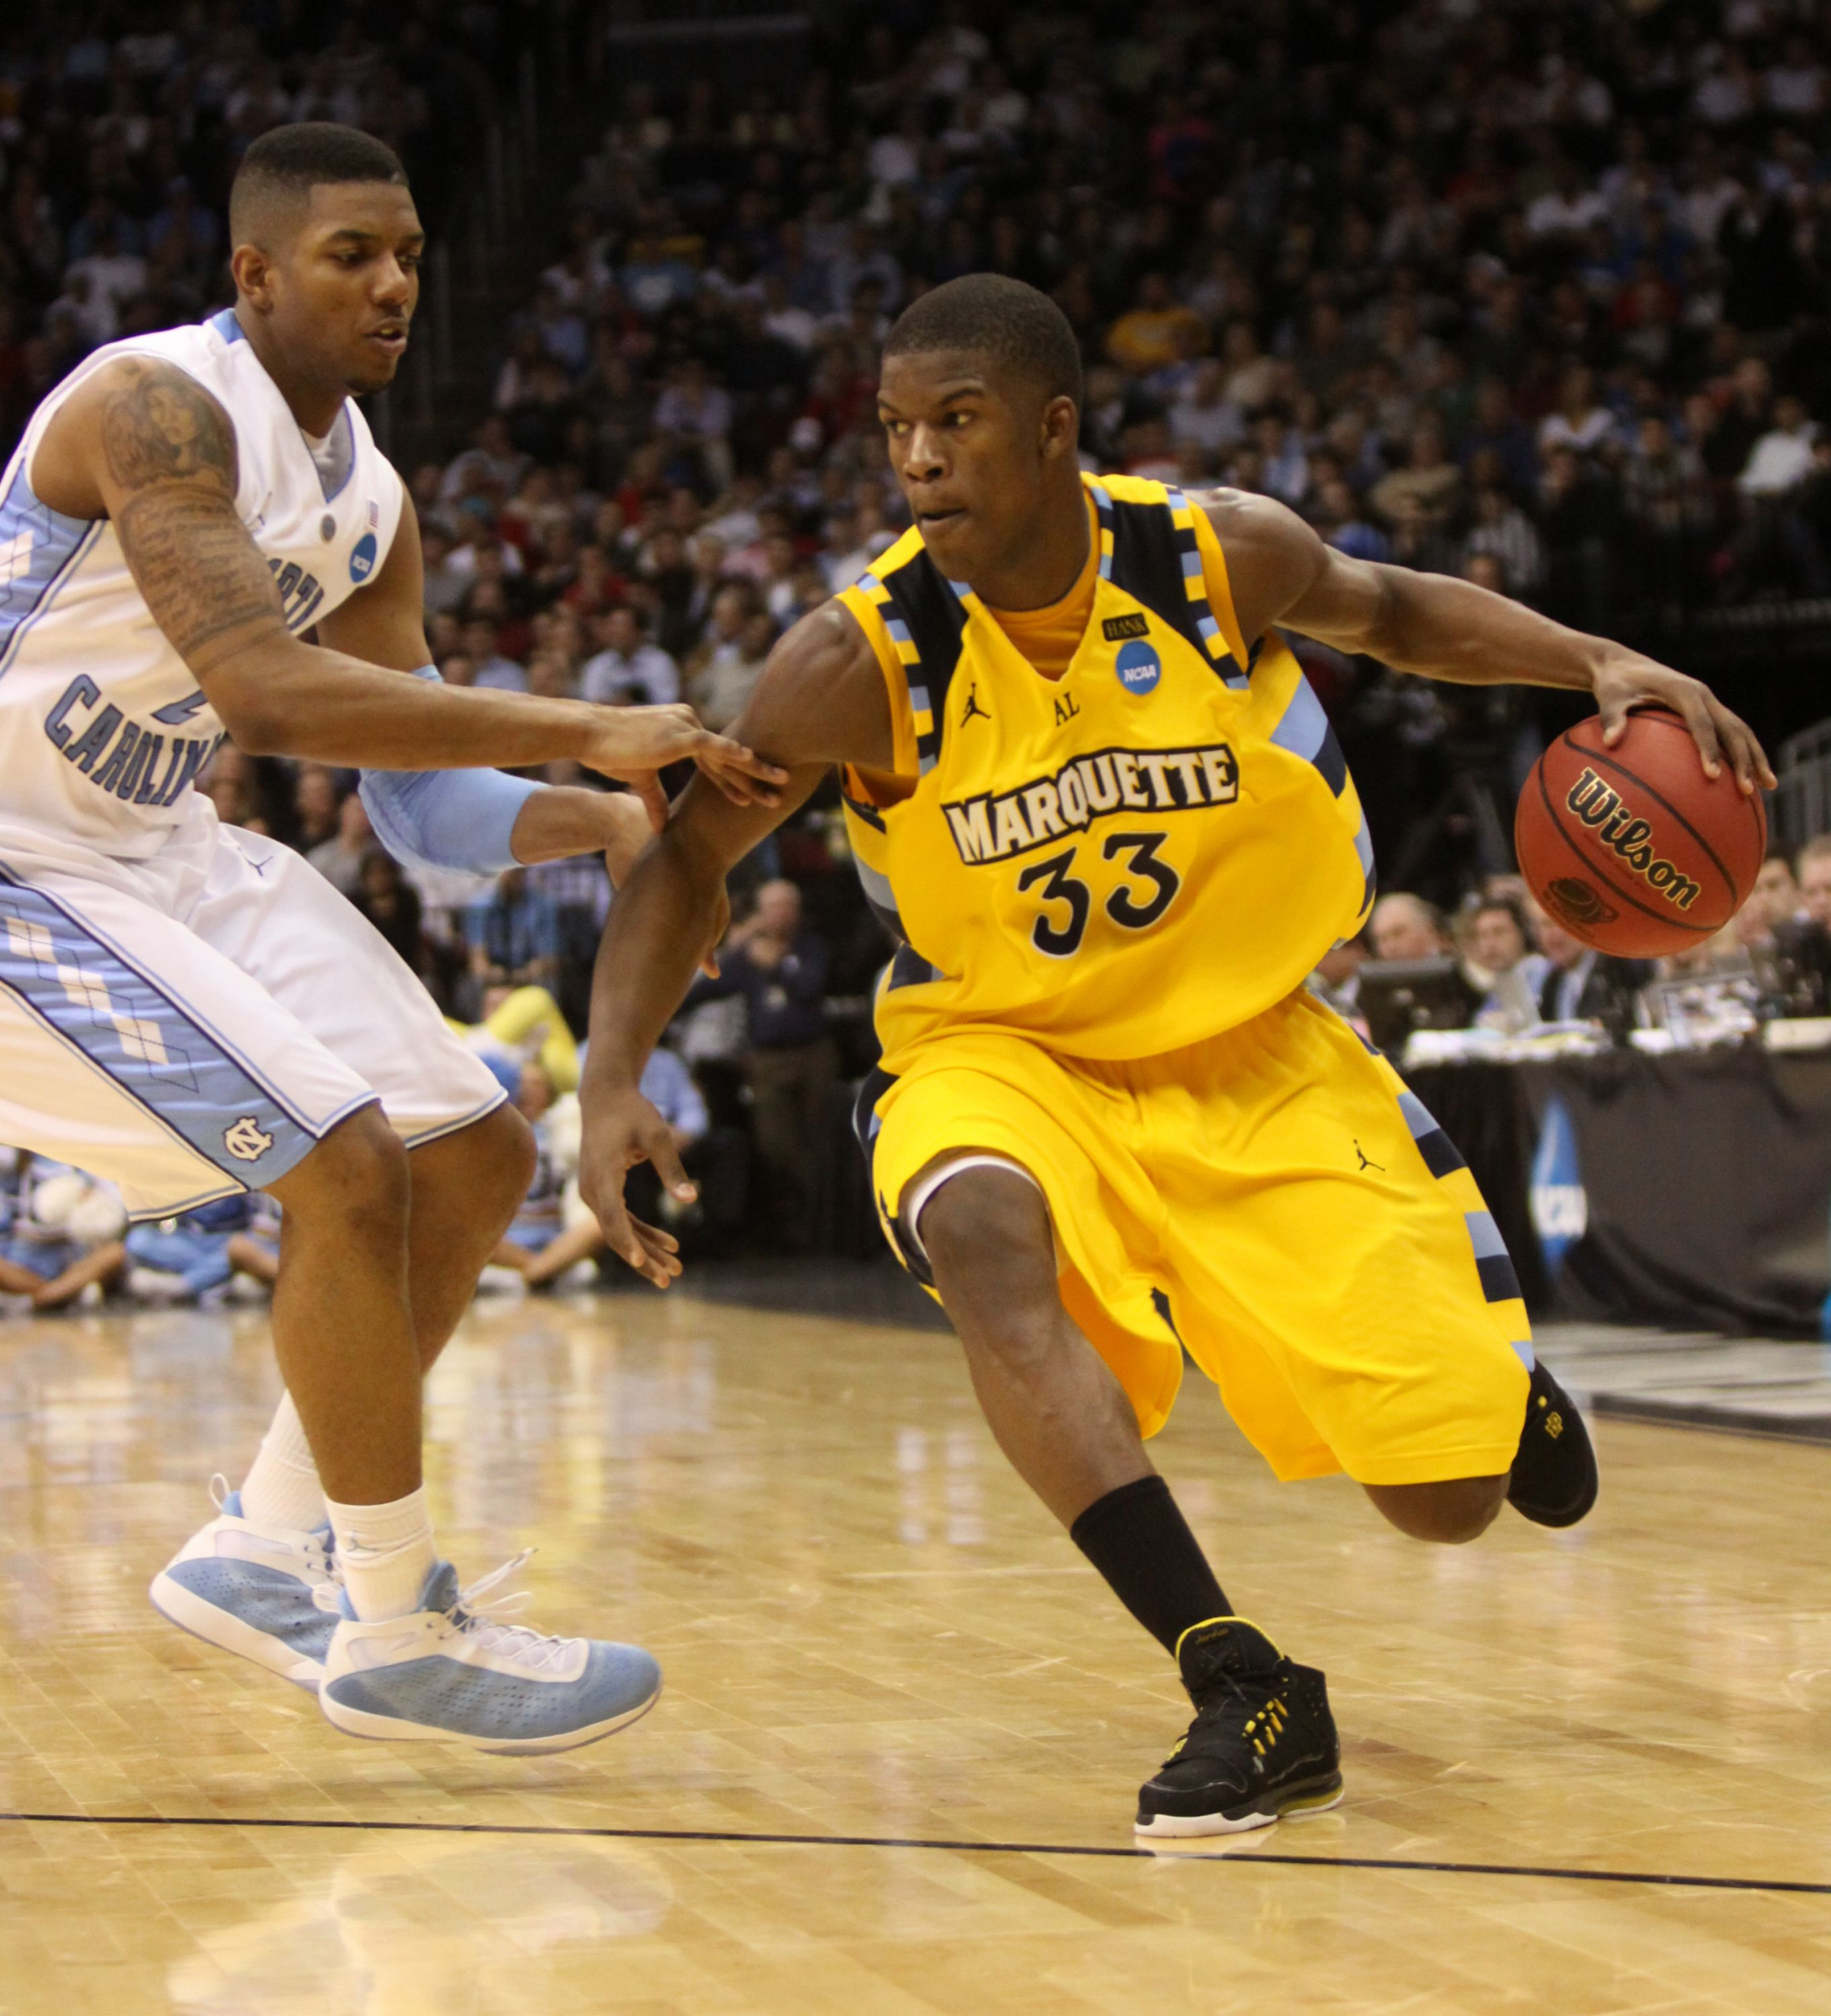 Jimmy Butler at Marquette in 2020 | Marquette basketball, Olympics 2008, Olympics